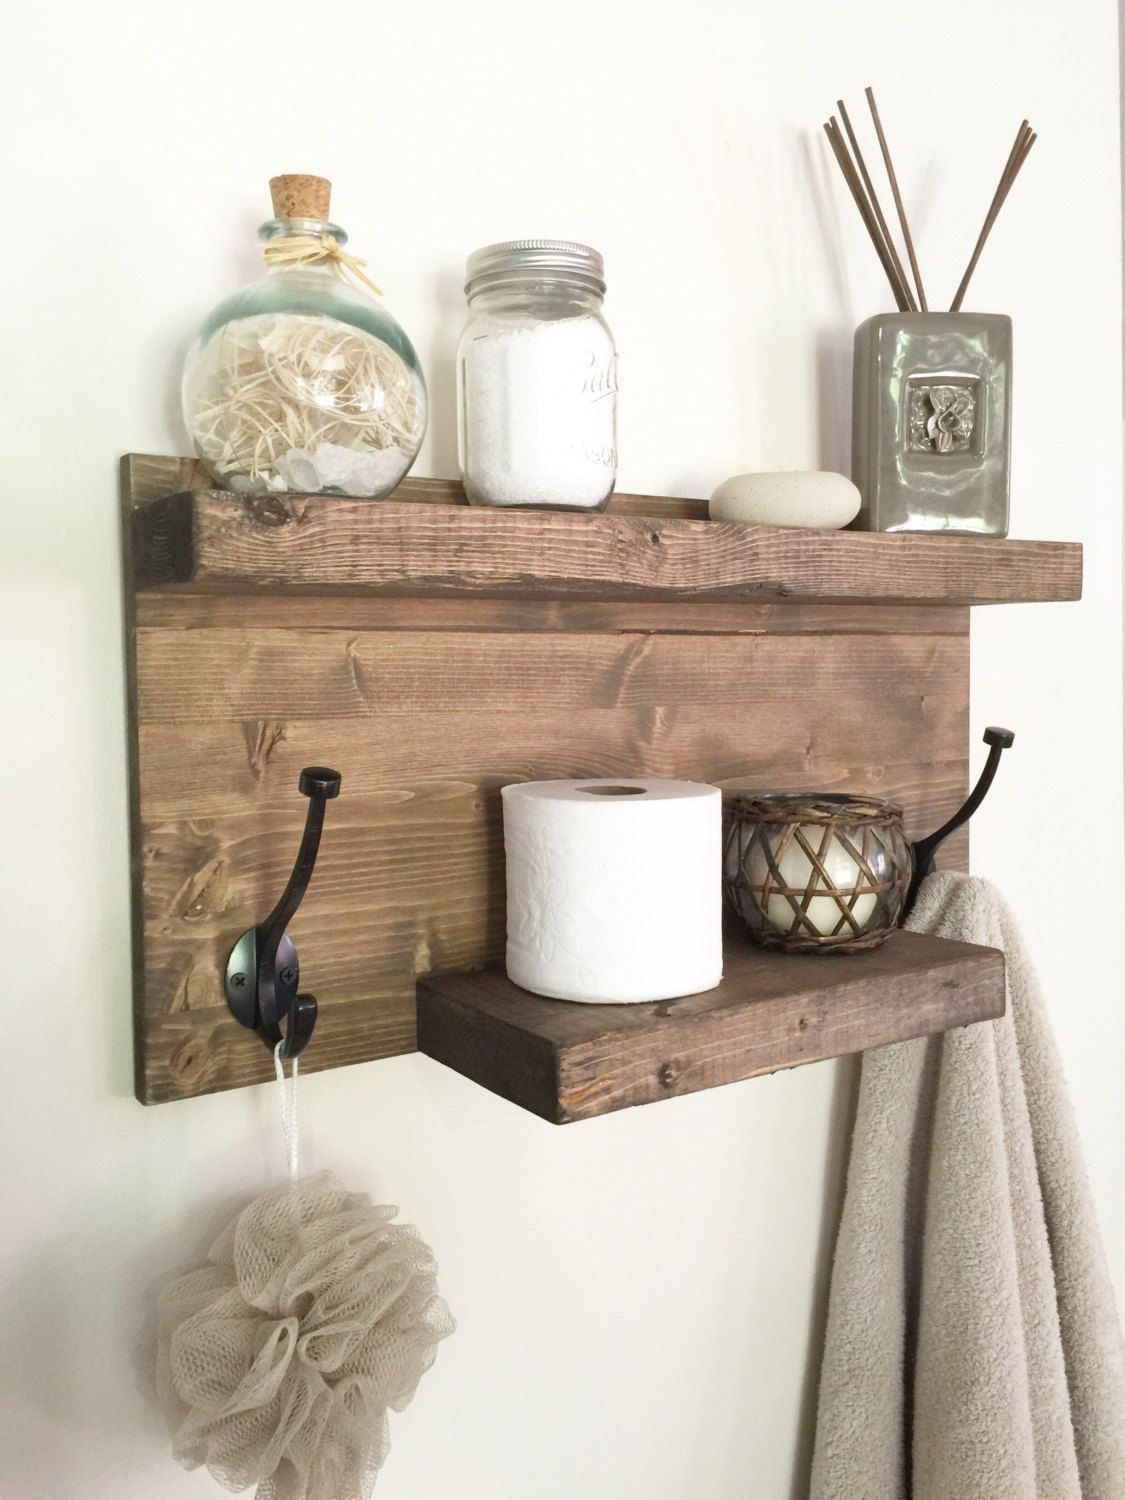 Rustic Bathroom Towel Rack Rustic Shelf Farmhouse Decor Bathroom Shelf With Hooks Bathroom Rustic Bathroom Shelves Bathroom Design Decor Rustic Towel Rack